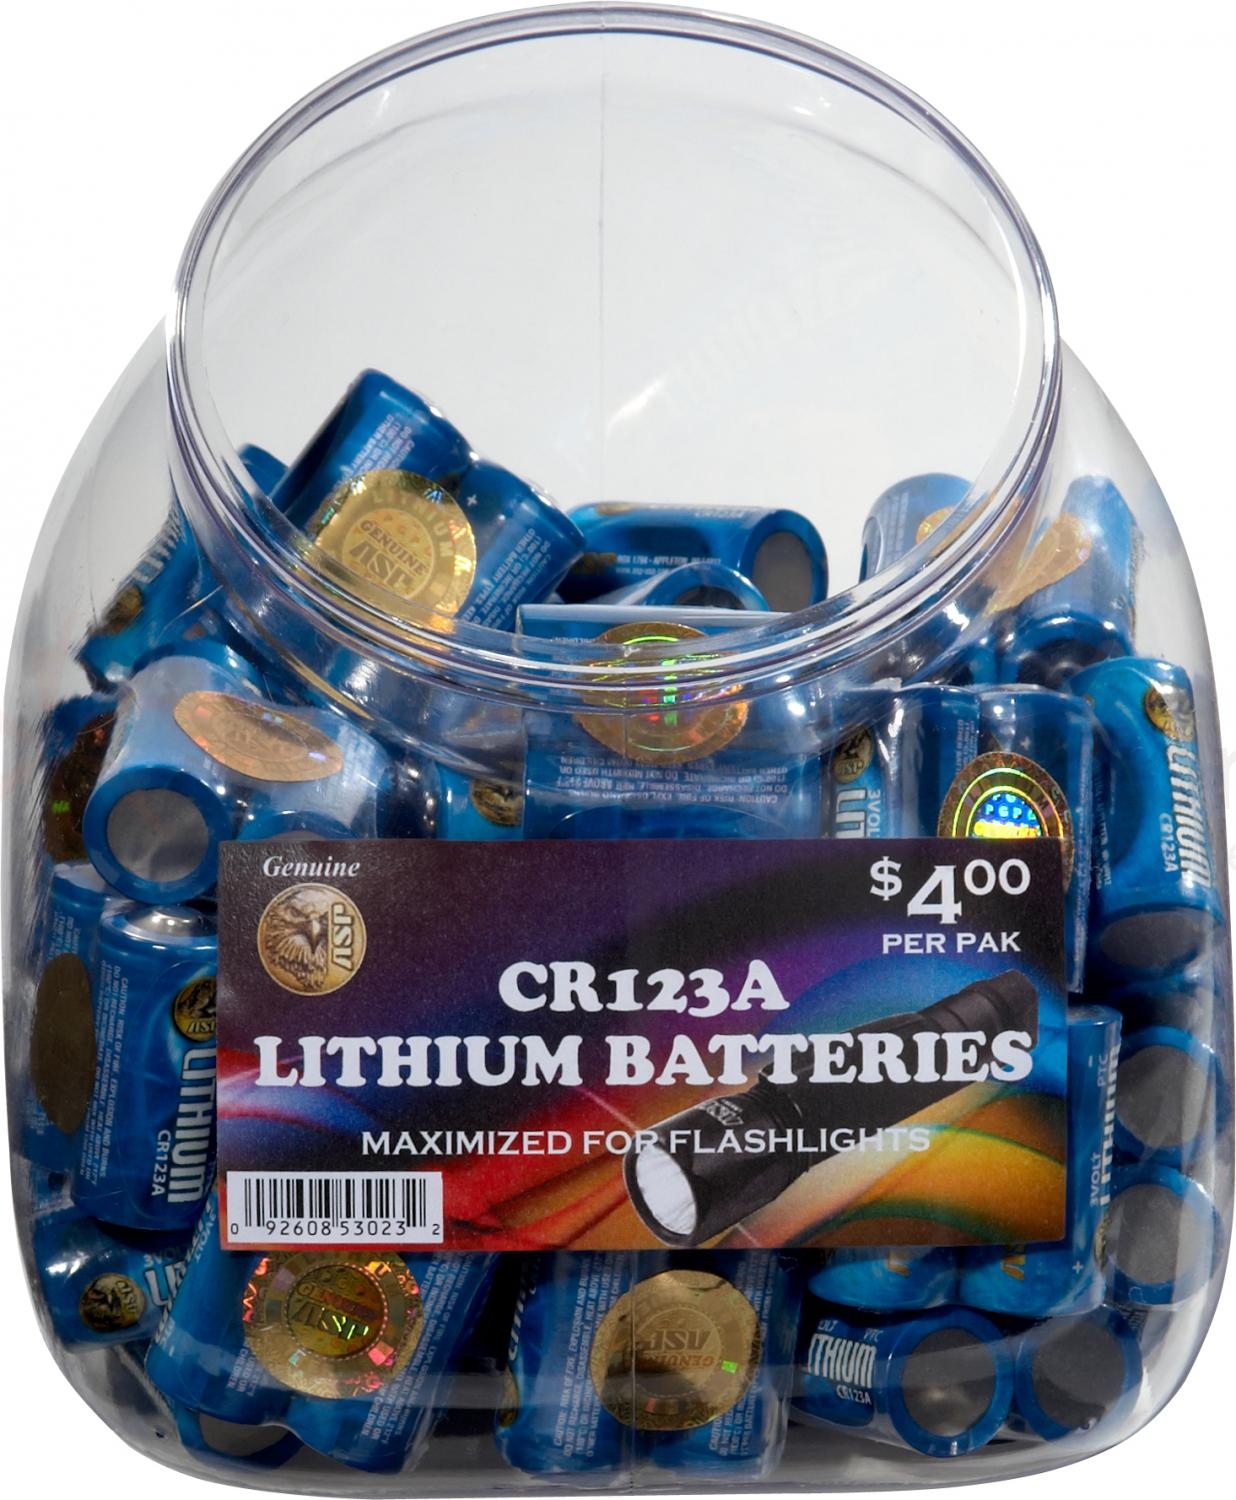 ASP CR123A Lithium Battery 100-Pack with Retail Bin